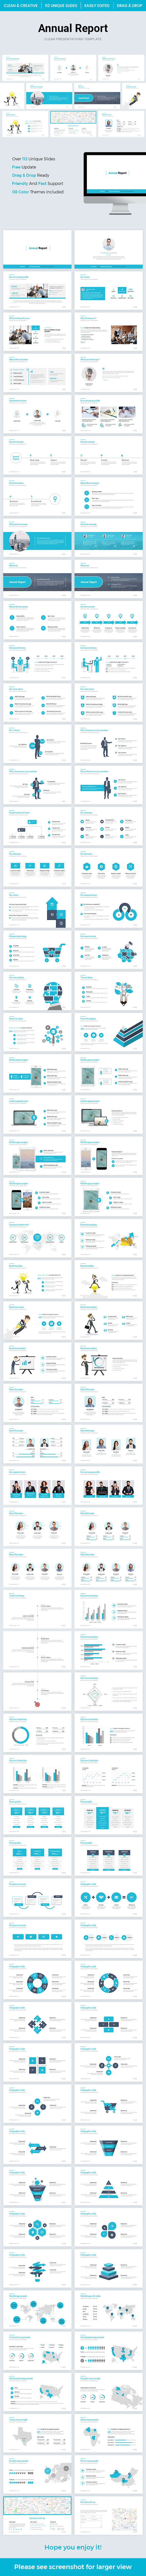 Annual Report PowerPoint Template 2.0 - Business PowerPoint Templates